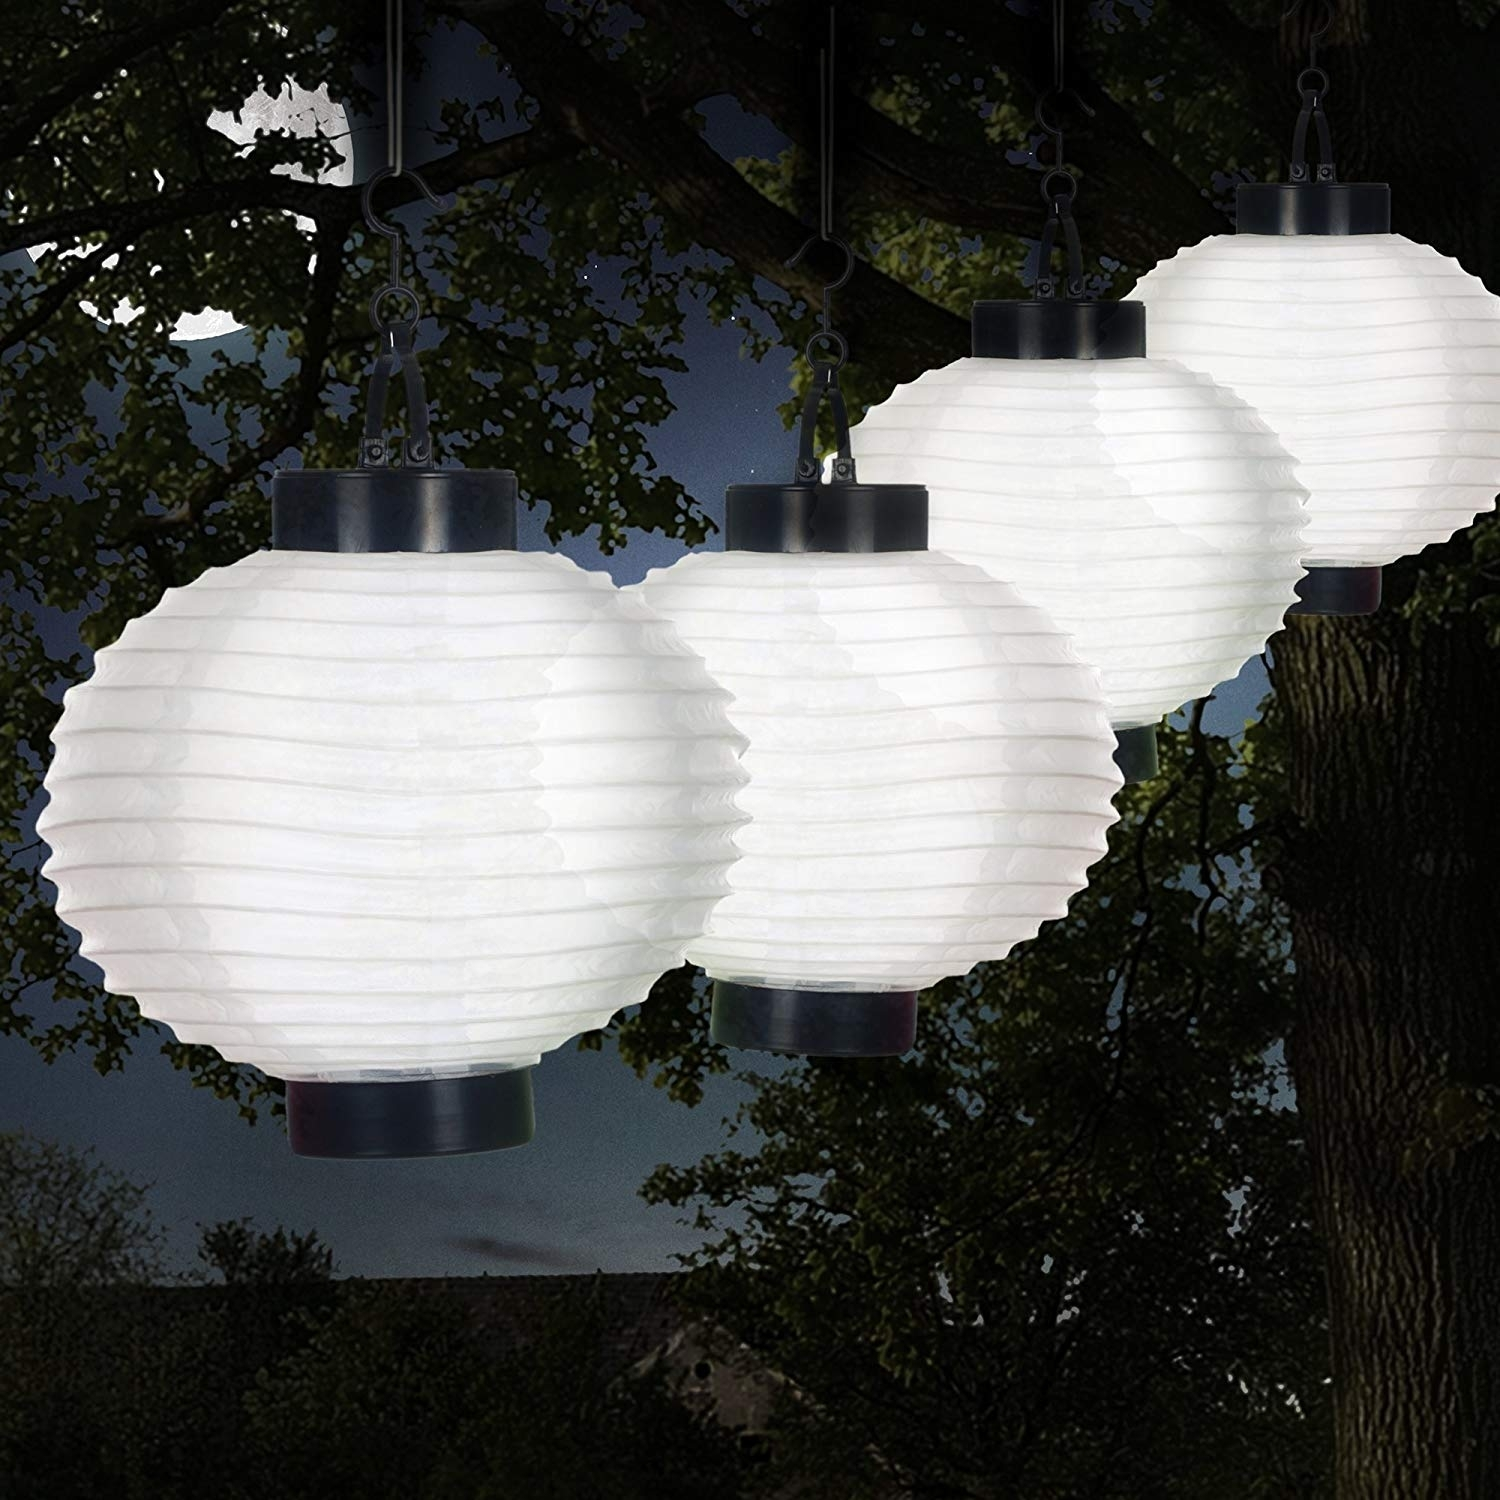 Pure Garden 50 19 W Outdoor Solar Chinese Led Lanterns, White With Regard To Outdoor Chinese Lanterns For Patio (Photo 6 of 20)